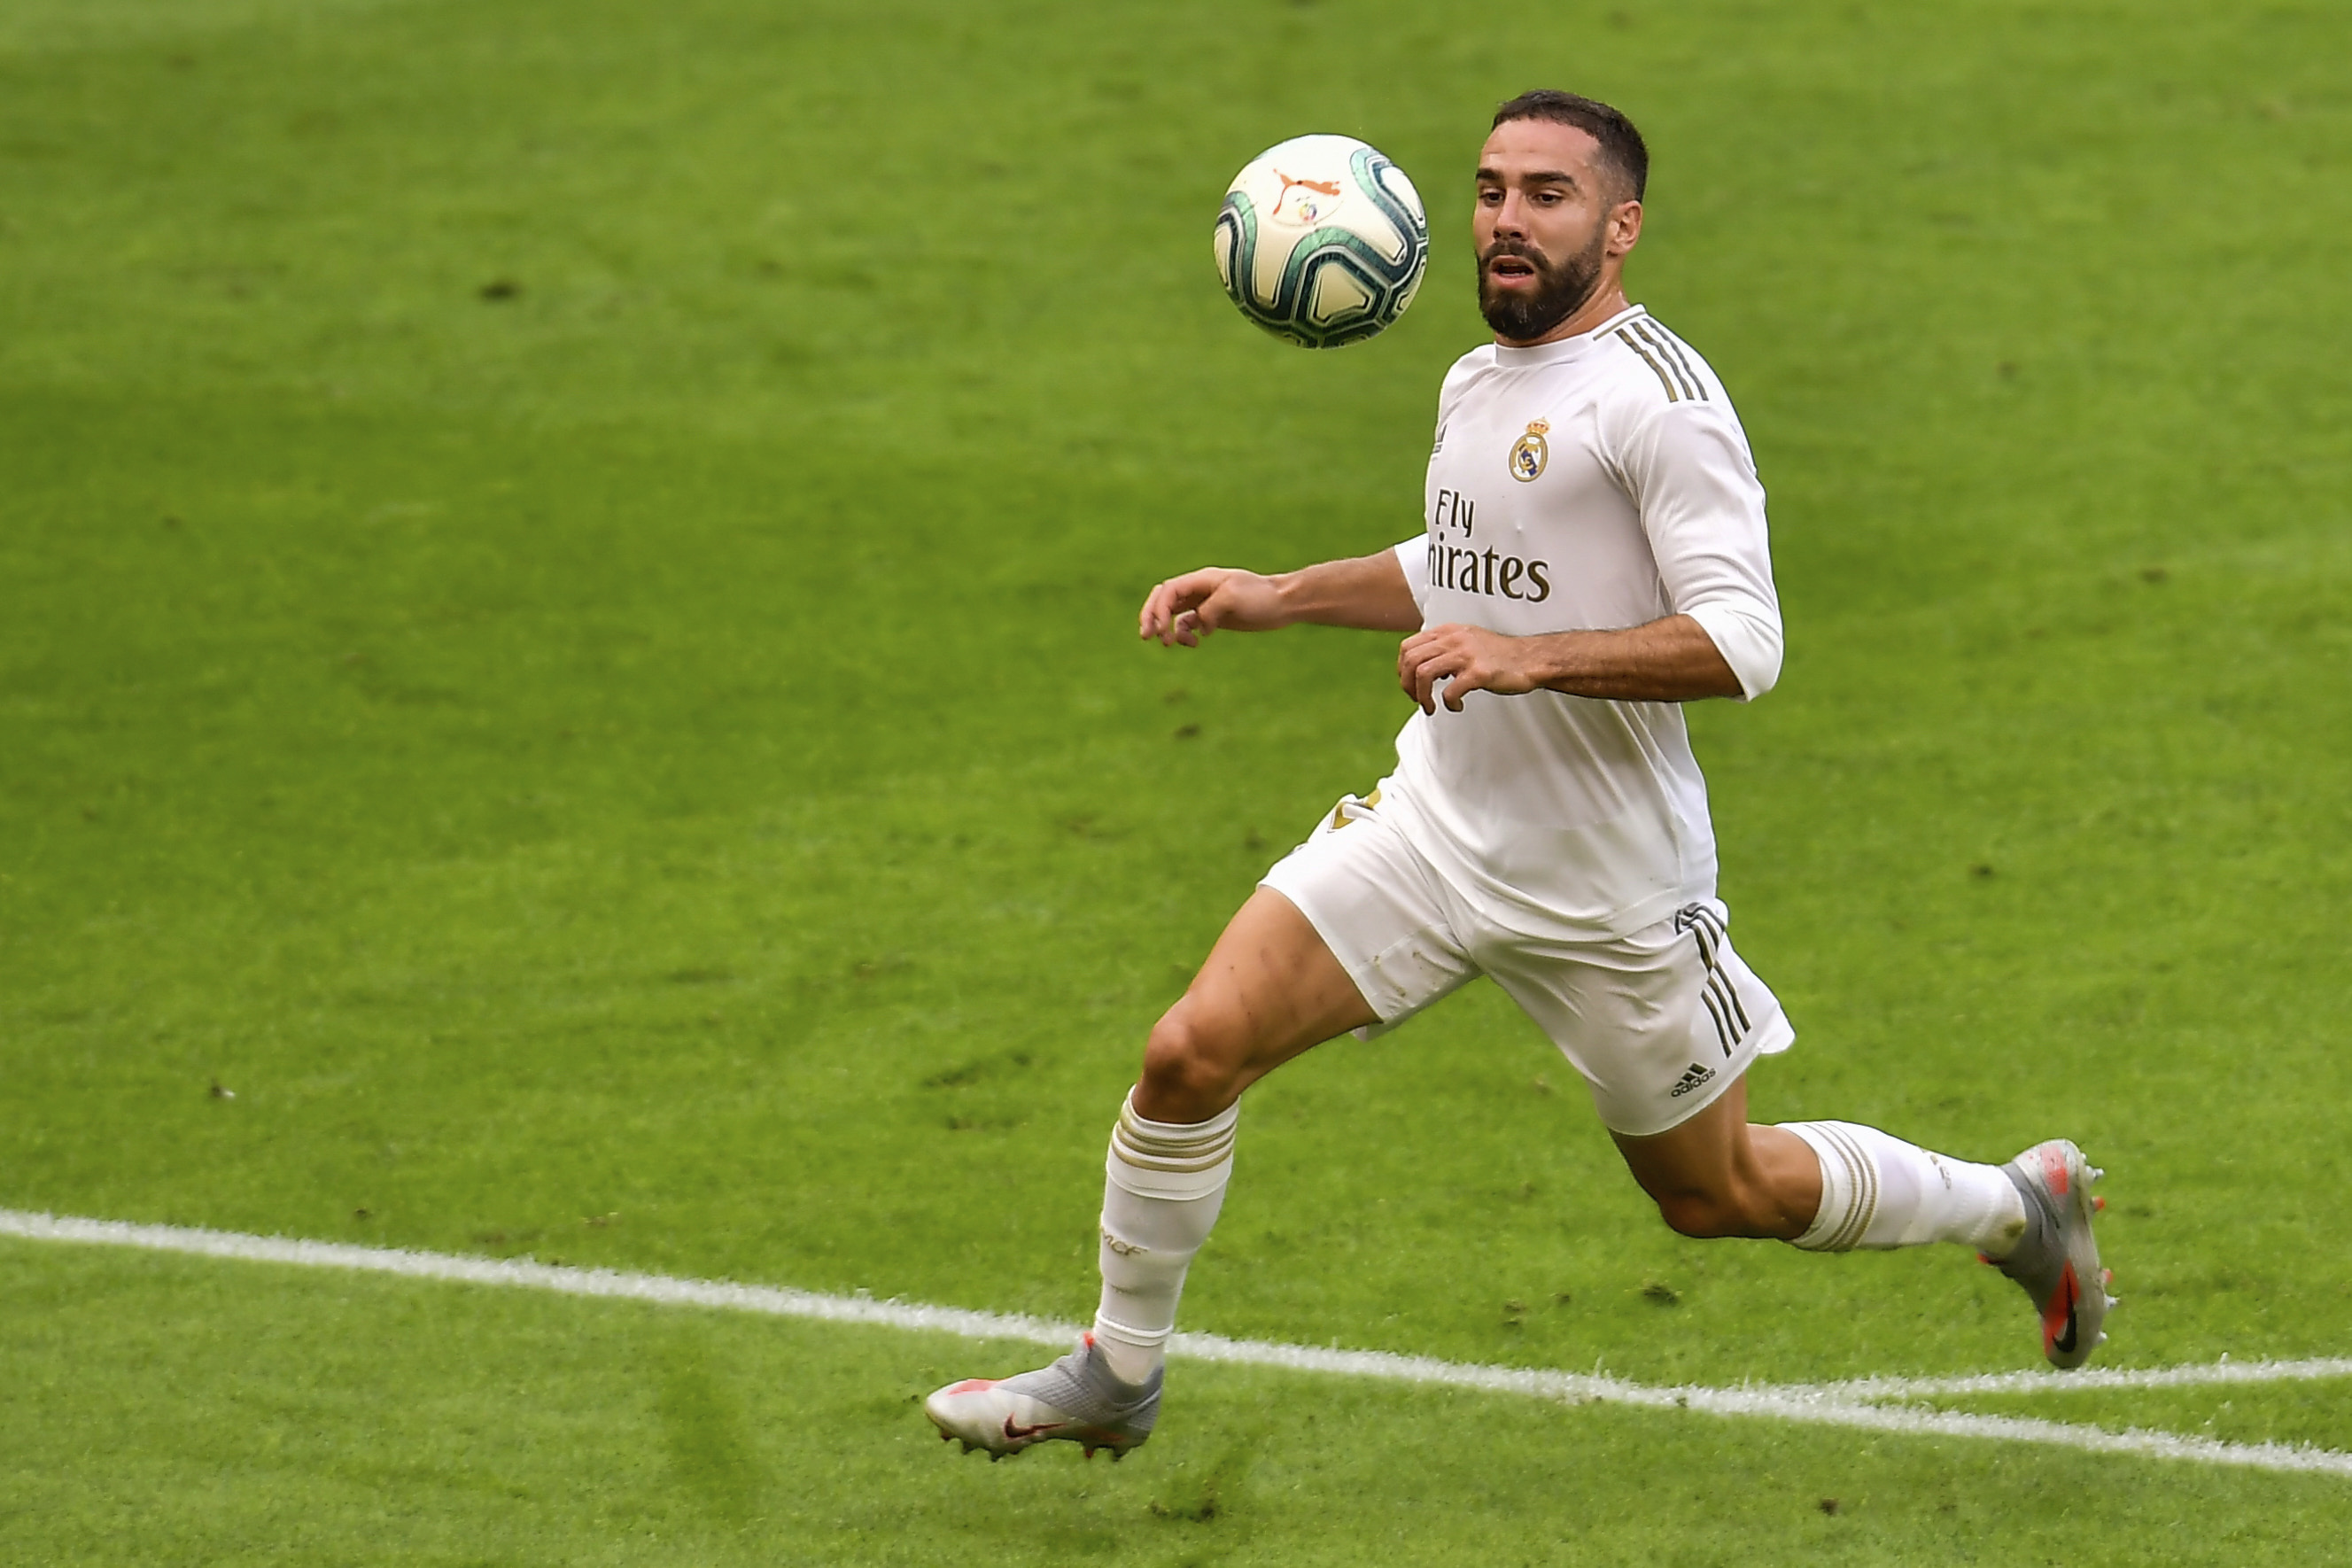 watch real madrid games live online free